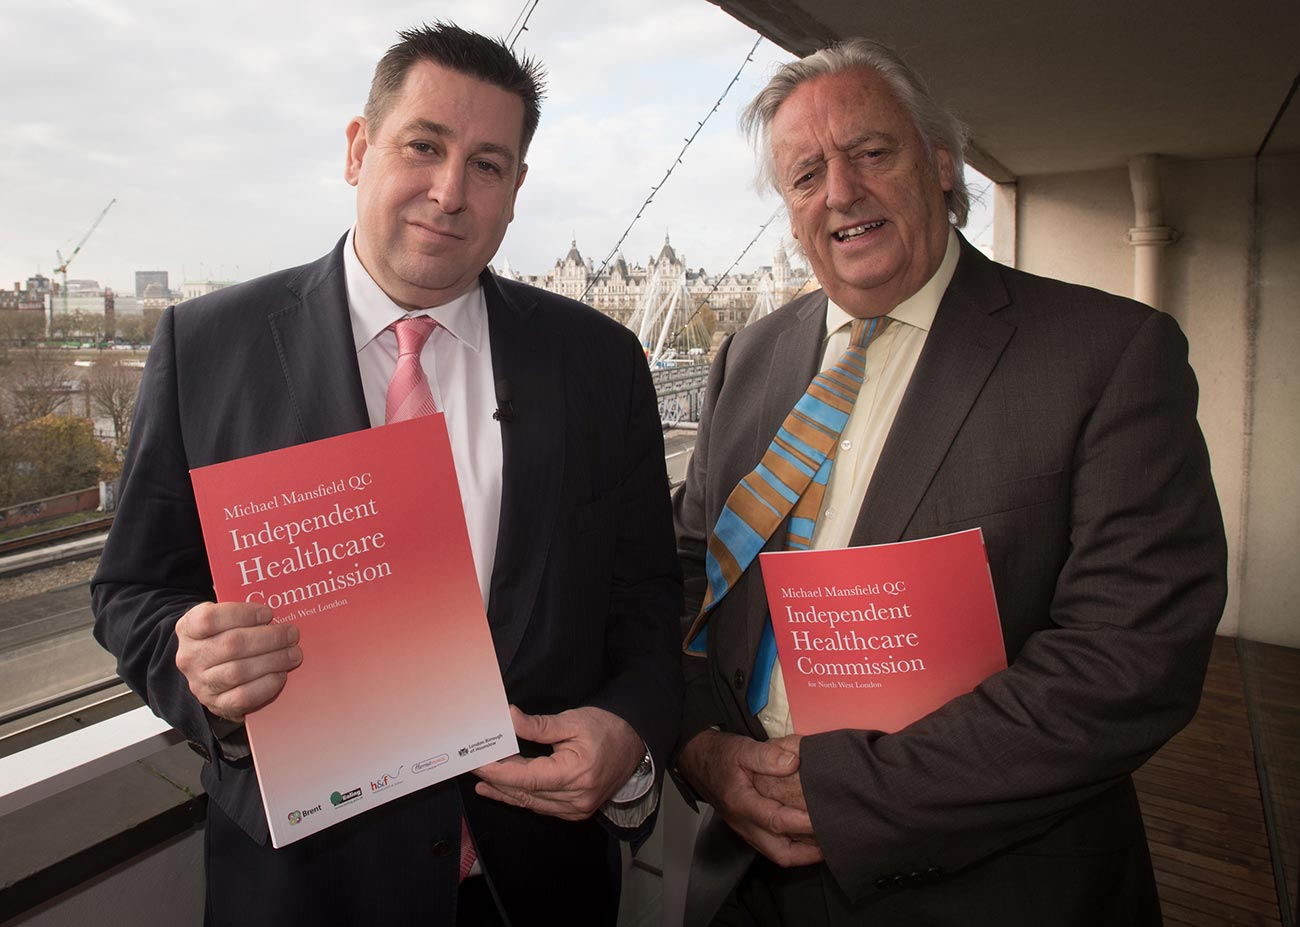 Hammersmith & Fulham Council Leader, Cllr Stephen Cowan, and Michael Mansfield QC release the Independent Healthcare Commission's report